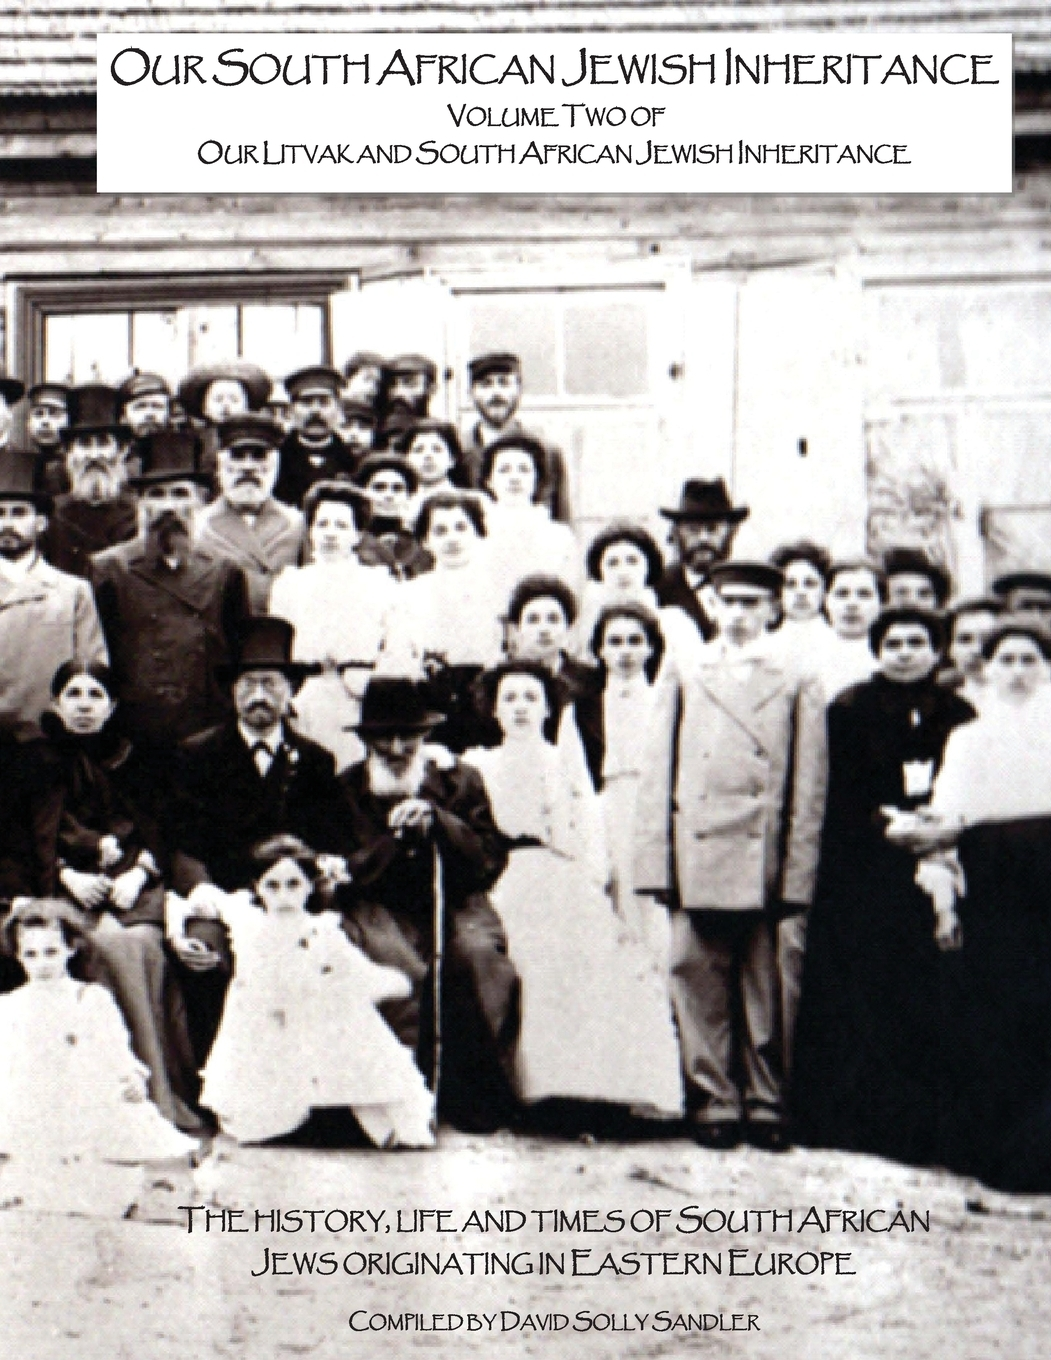 Our Litvak and South African Jewish Inheritance: Our South